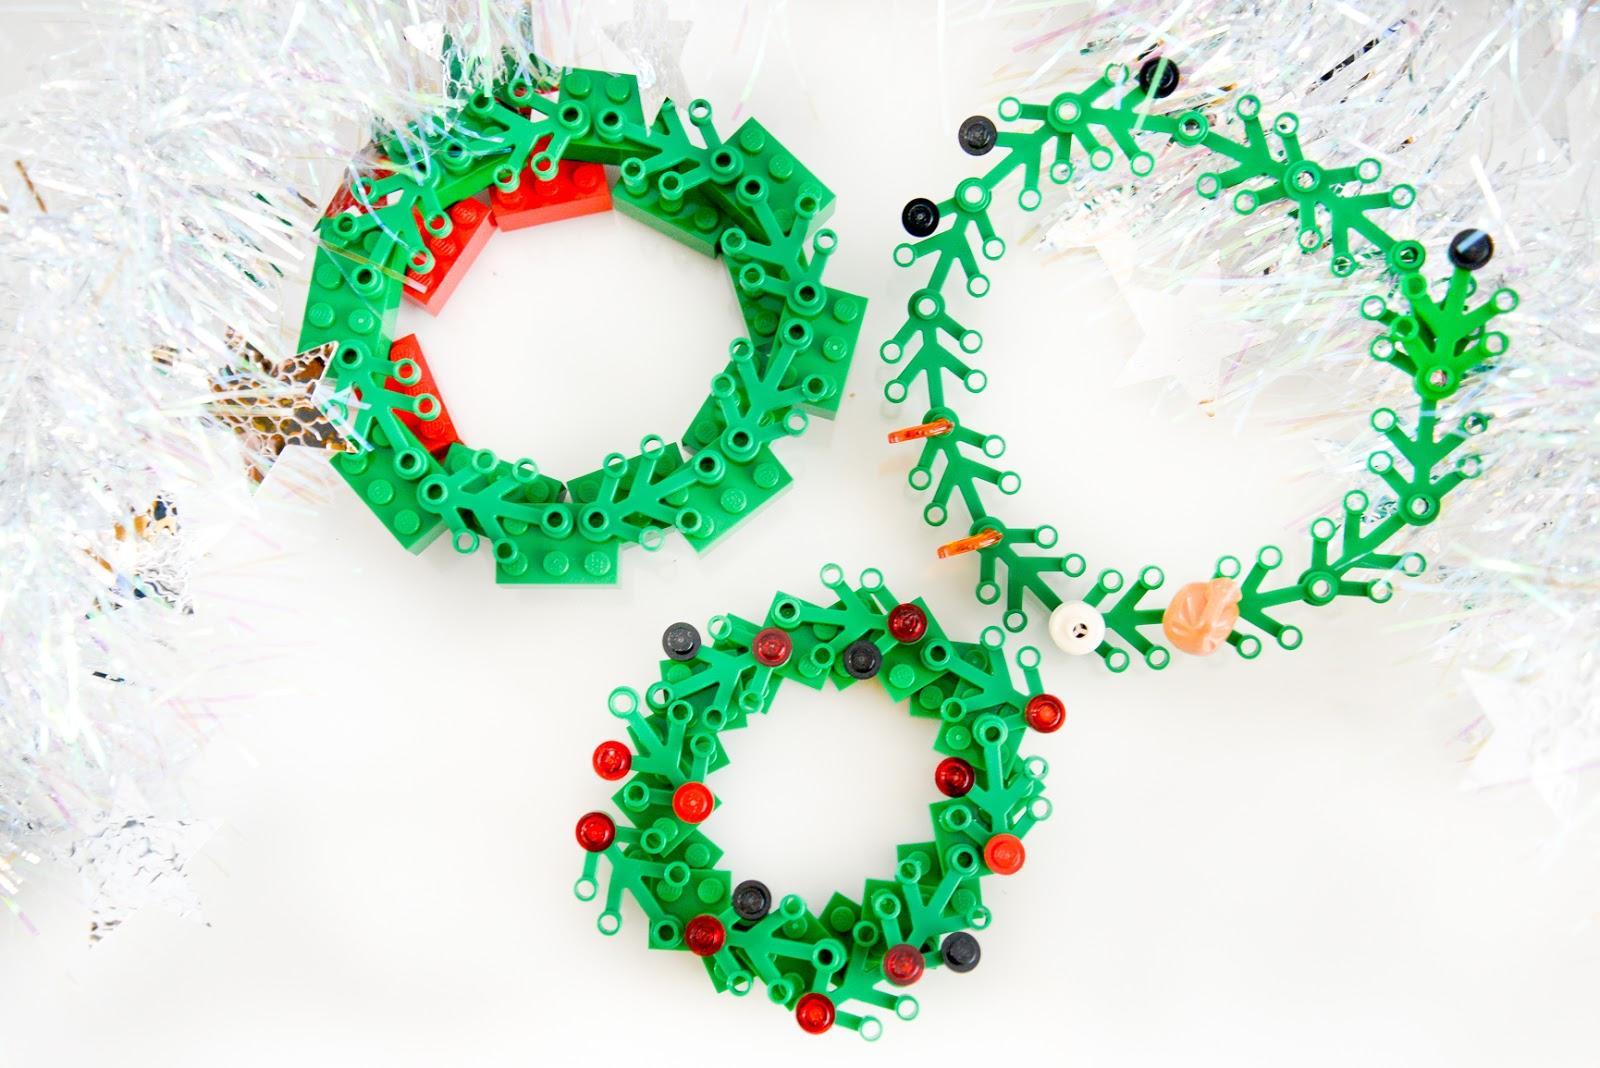 christmas lego, DIY christmas lego ornaments, DIY lego christmas decorations, Lego Christmas wreath